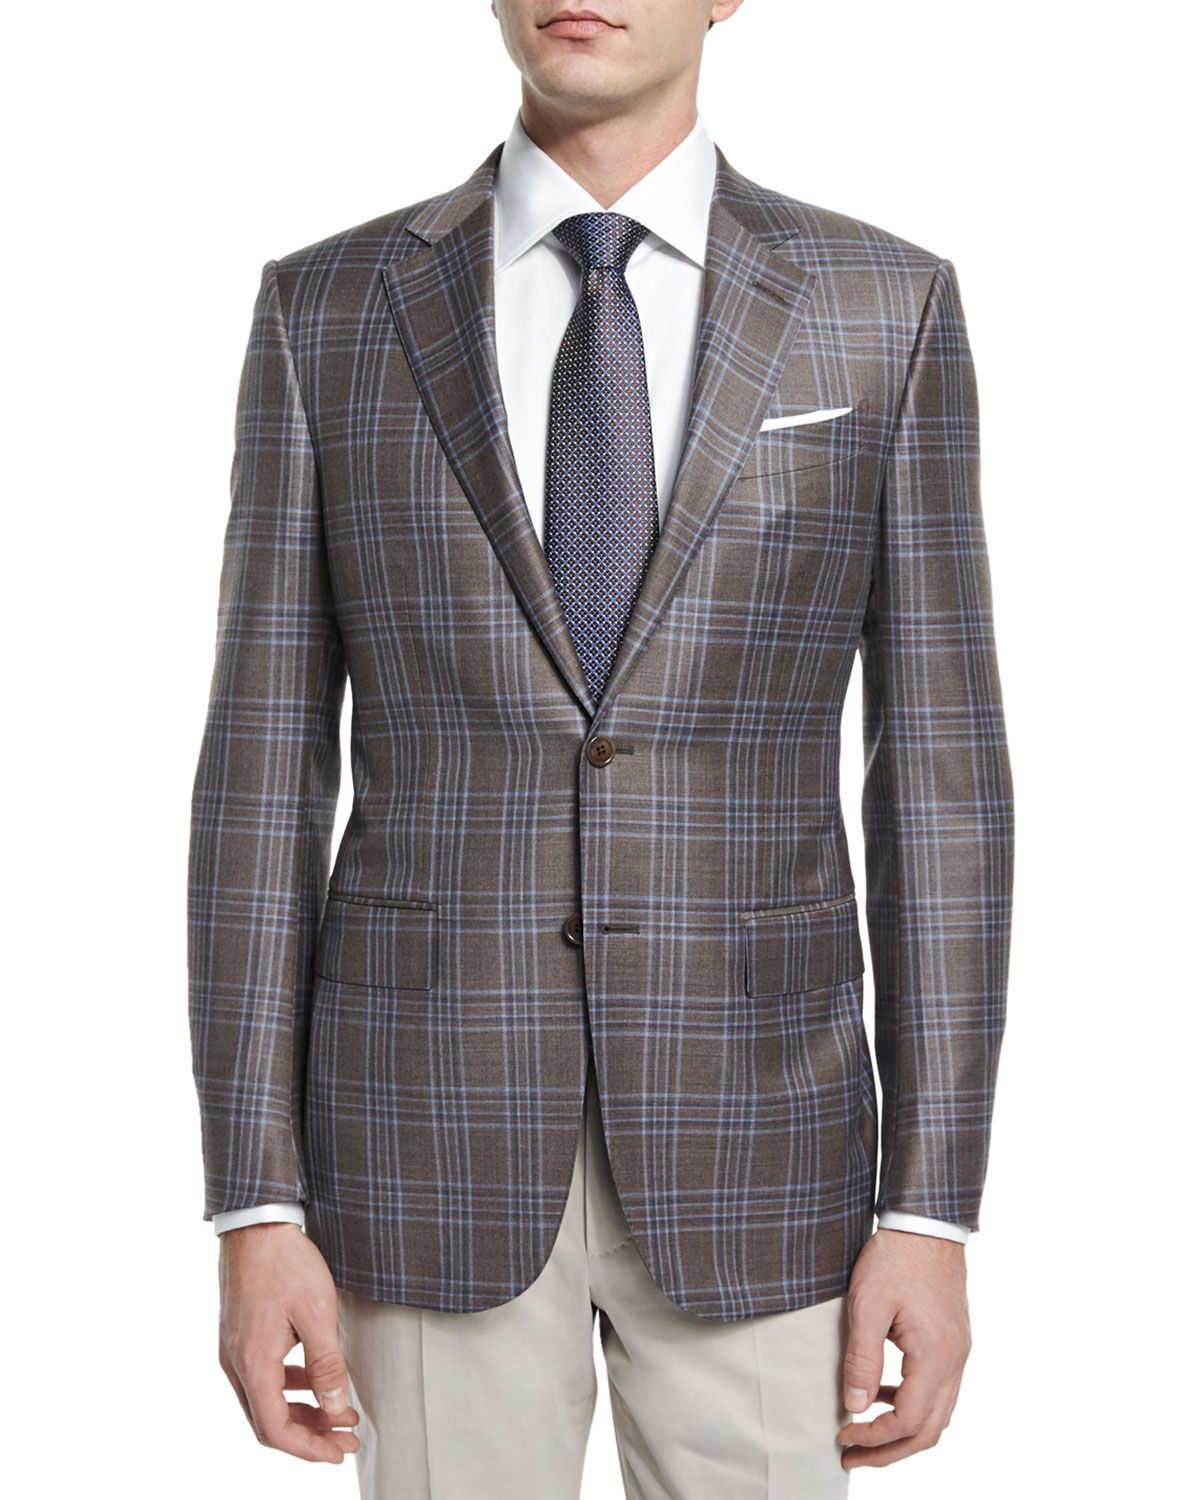 af0c7c2357 Plaid Two-Button Sport Coat Brown/Blue in 2019 | *Outerwear > Coats ...